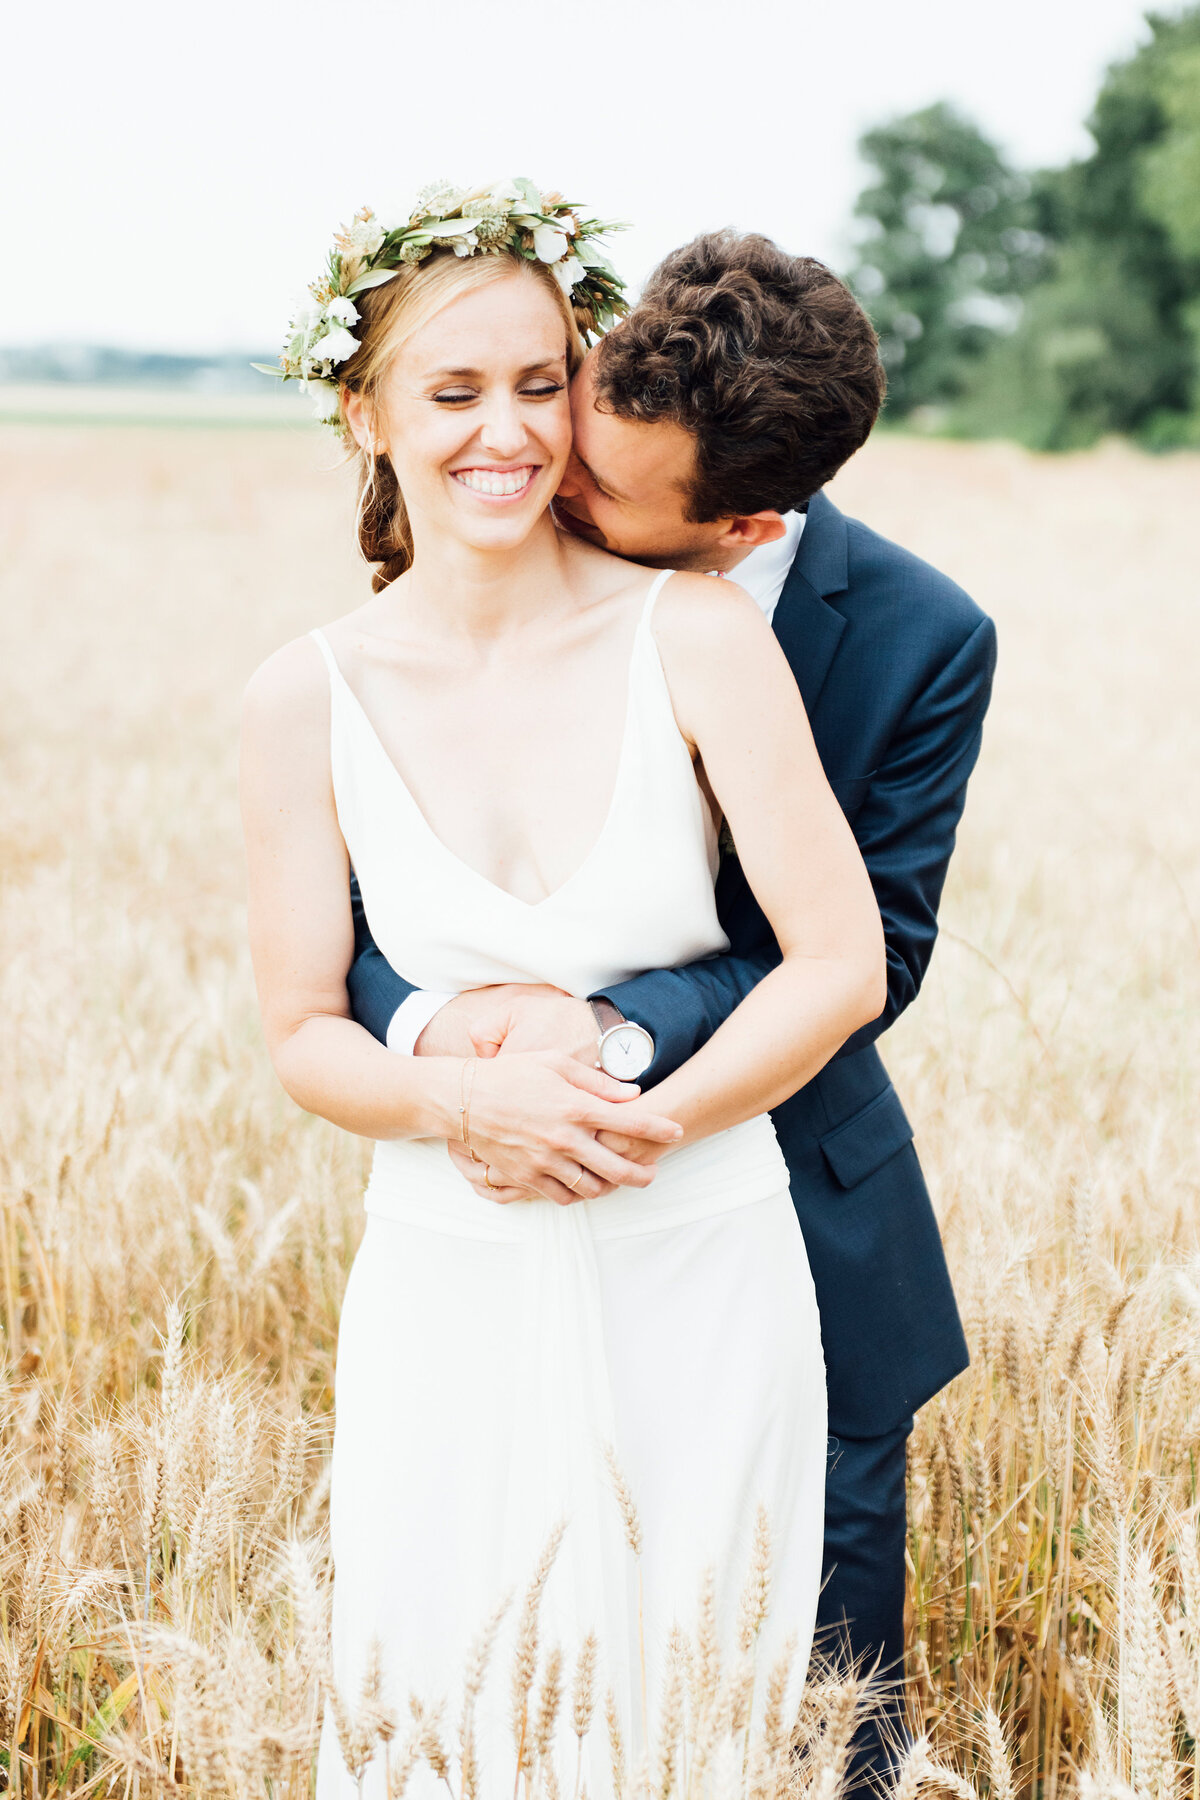 Trine_Juel_hair_and_makeupartist_wedding_franceWedding_FR_449